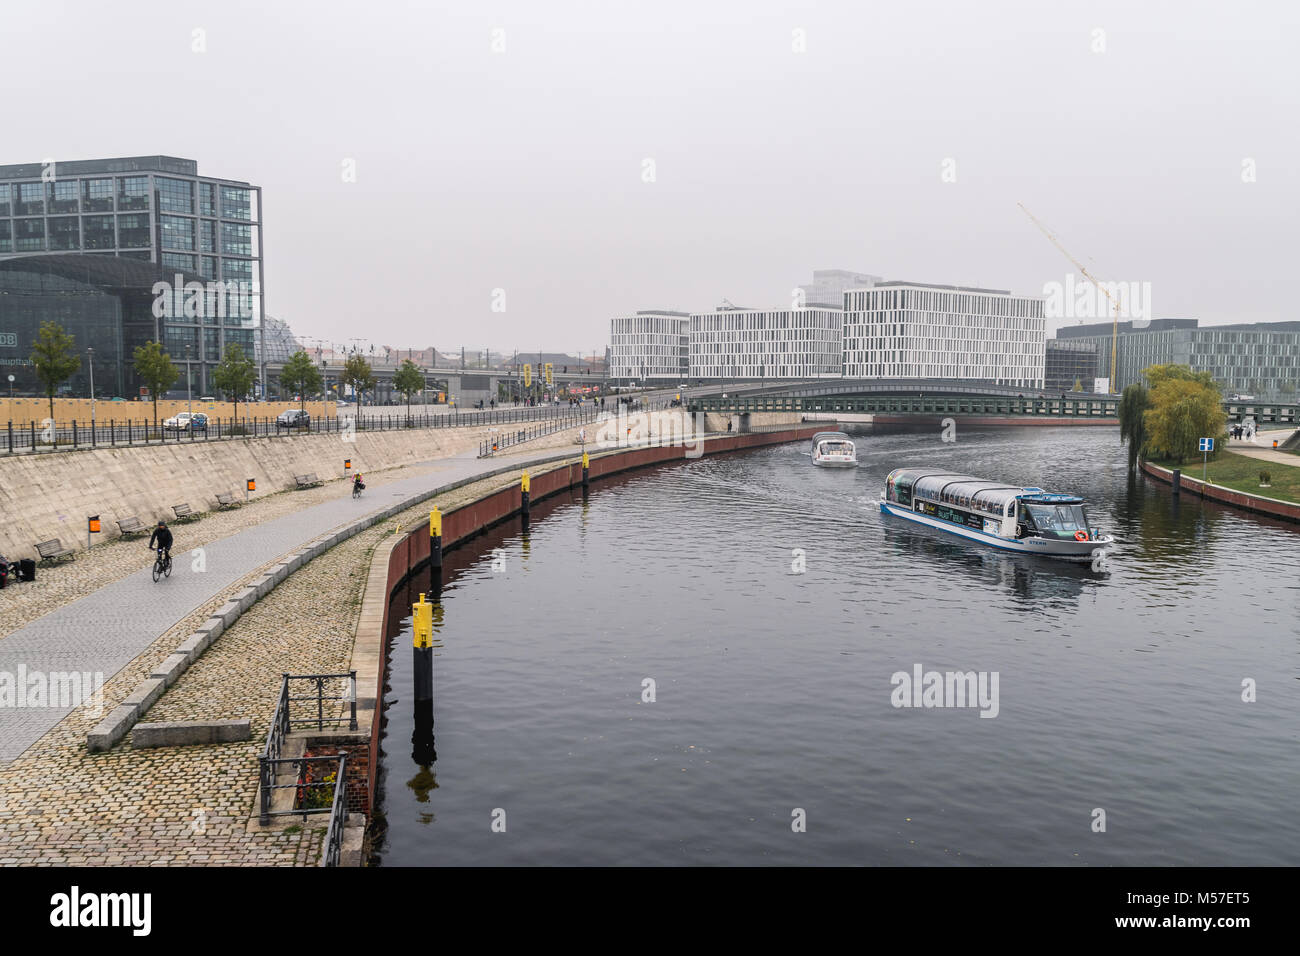 BERLIN - OCTOBER 18, 2016: River Spree with a view to the Berllin Hauptbahnhof area. - Stock Image